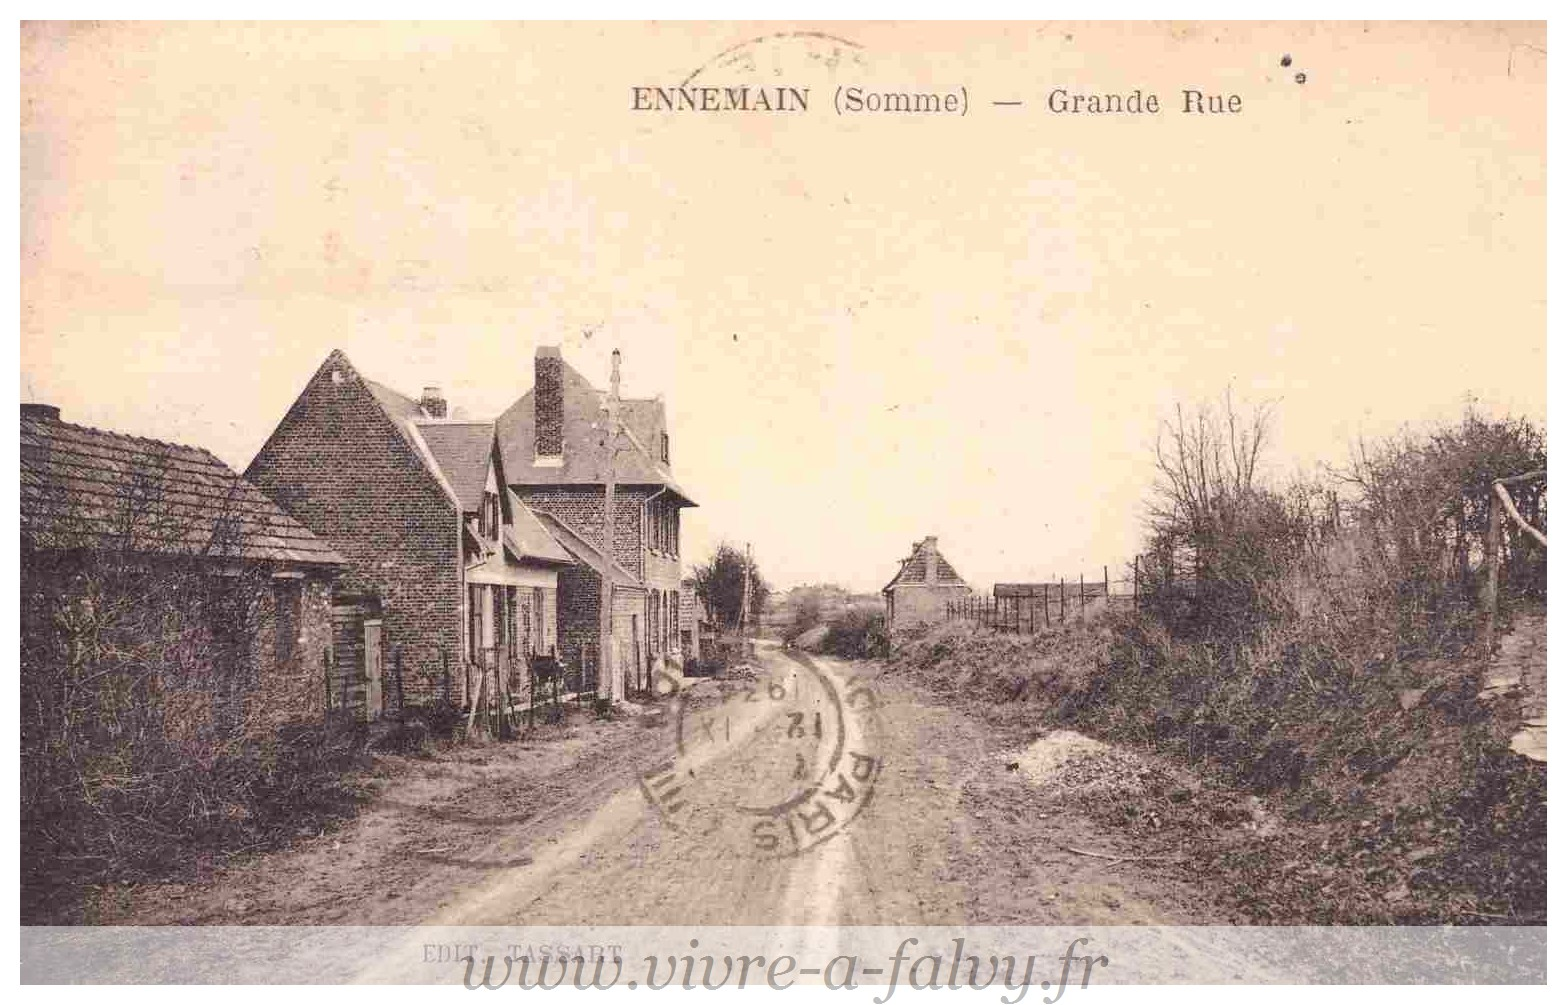 Ennemain - Grande Rue